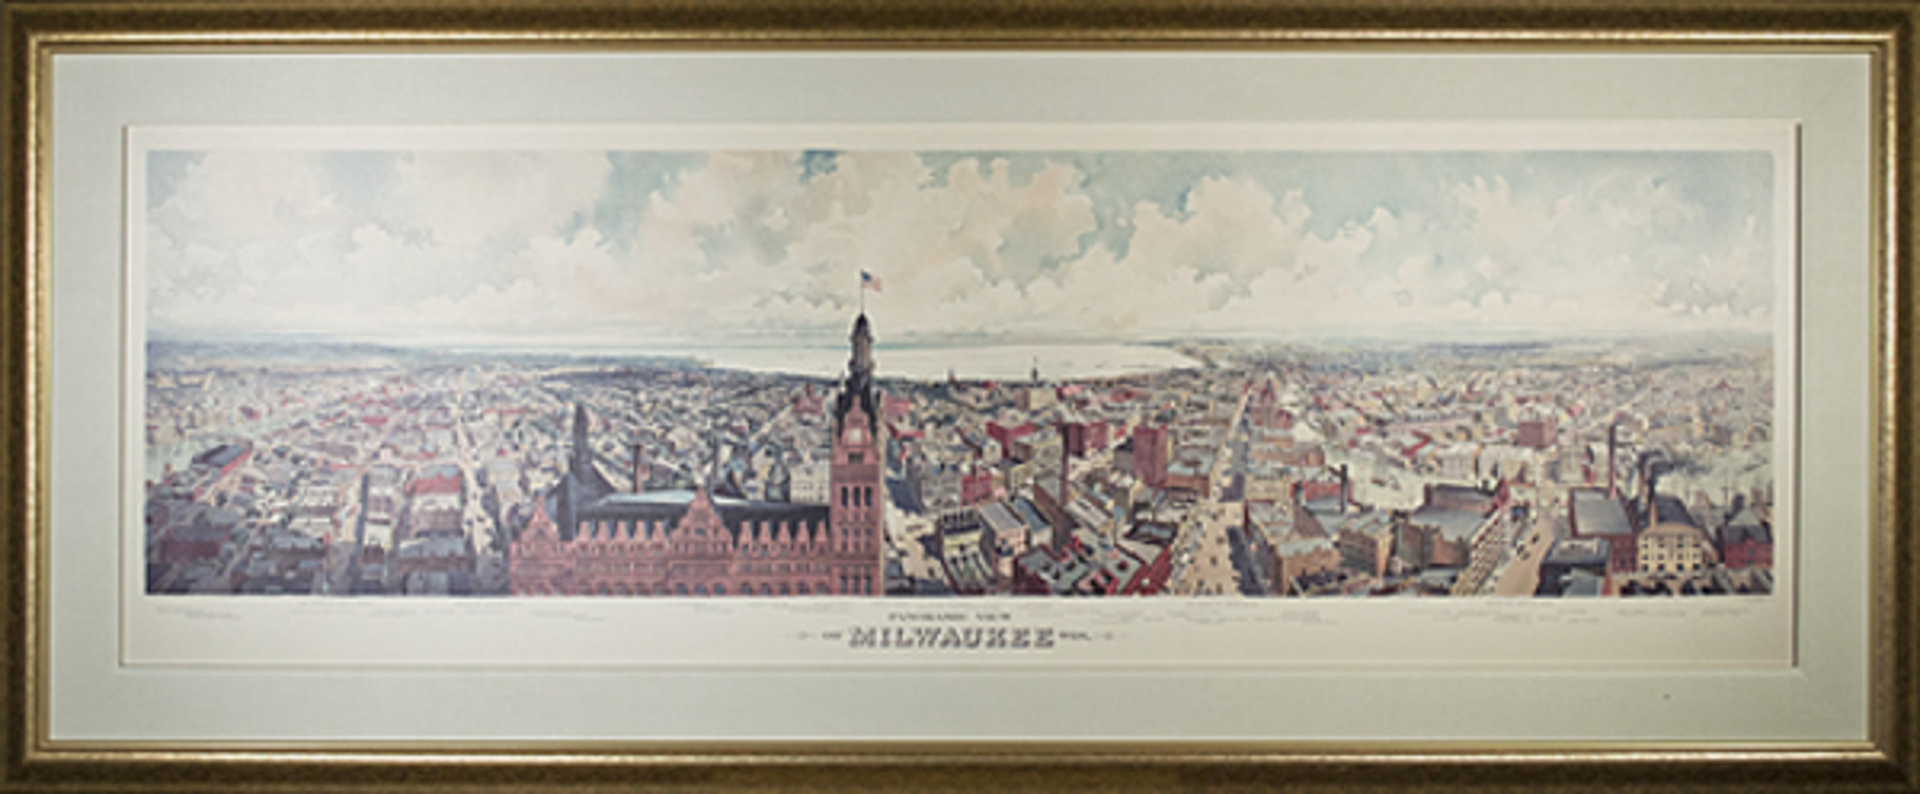 Panoramic View of Milwaukee Taken From City Hall Tower by Unknown